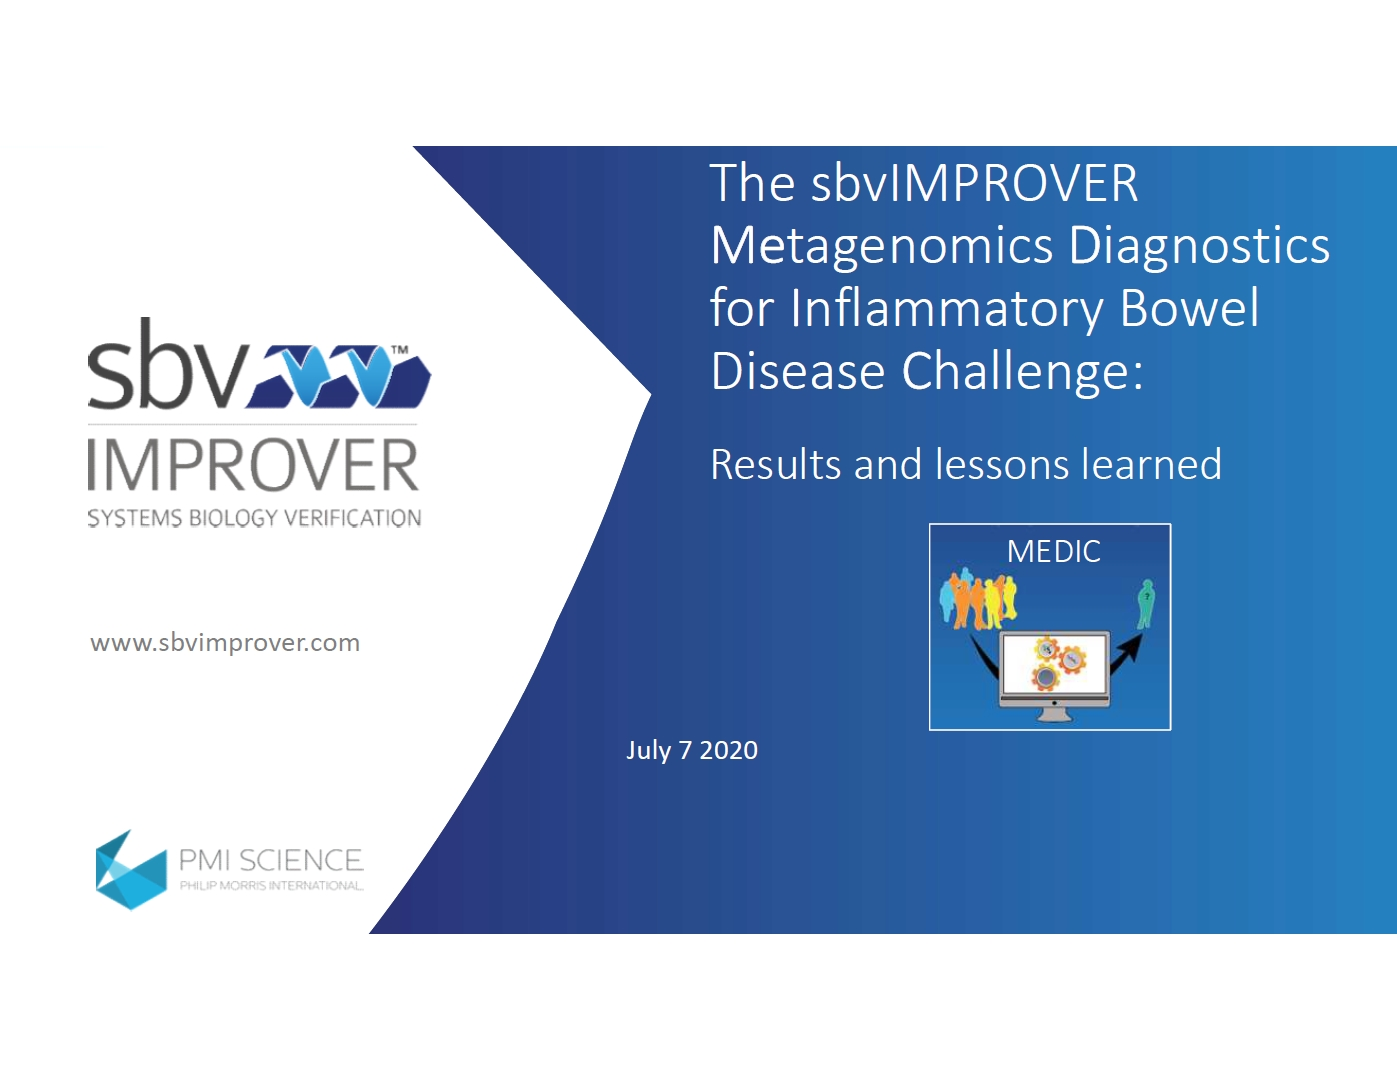 The sbvimprover metagenomics diagnostics for inflammatory bowel disease challenge